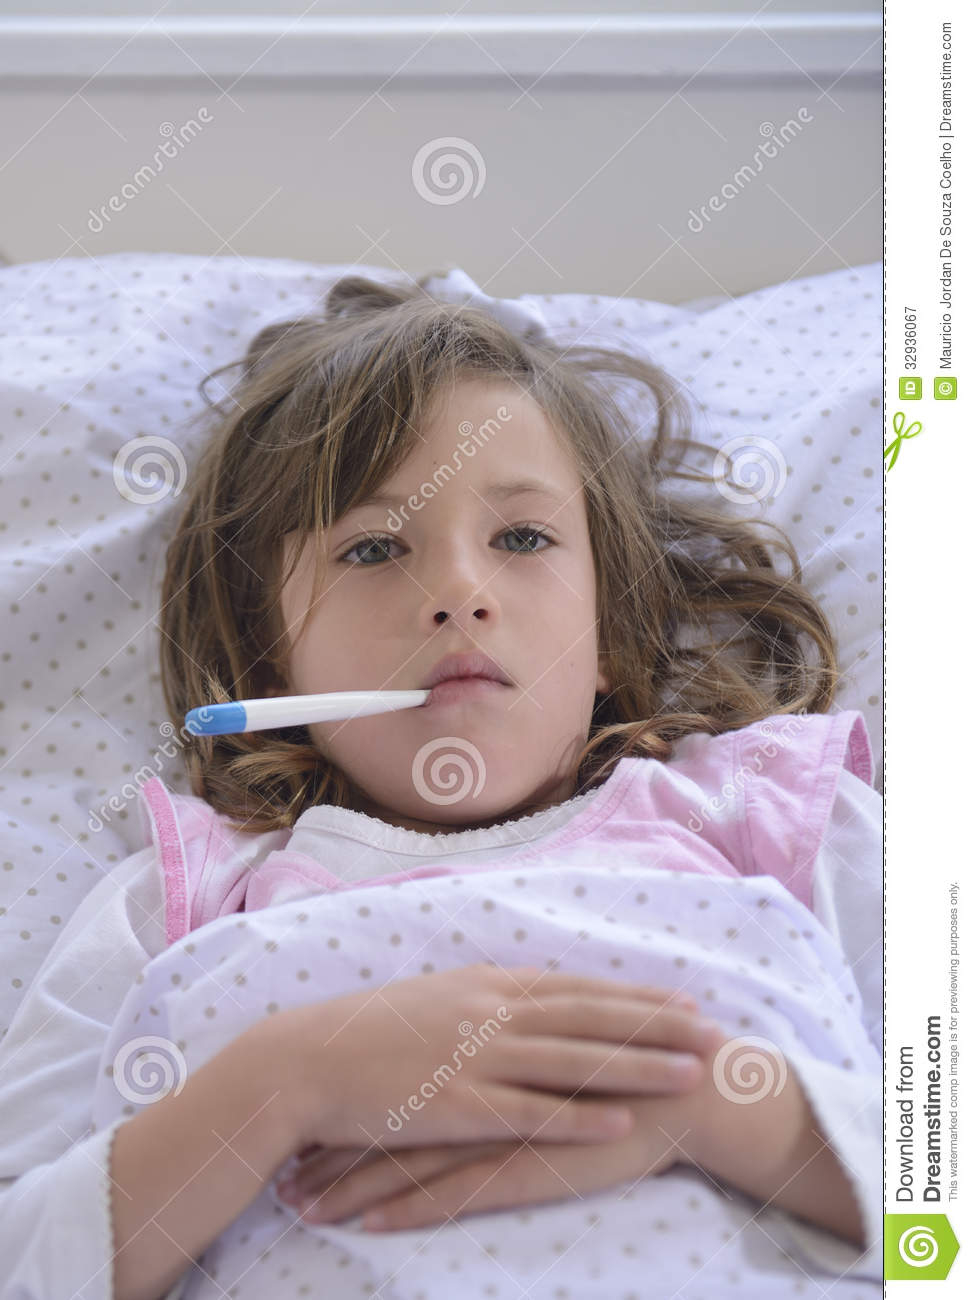 Baño En Ninos Con Fiebre:Picture of Child in Bed Sick with Fever